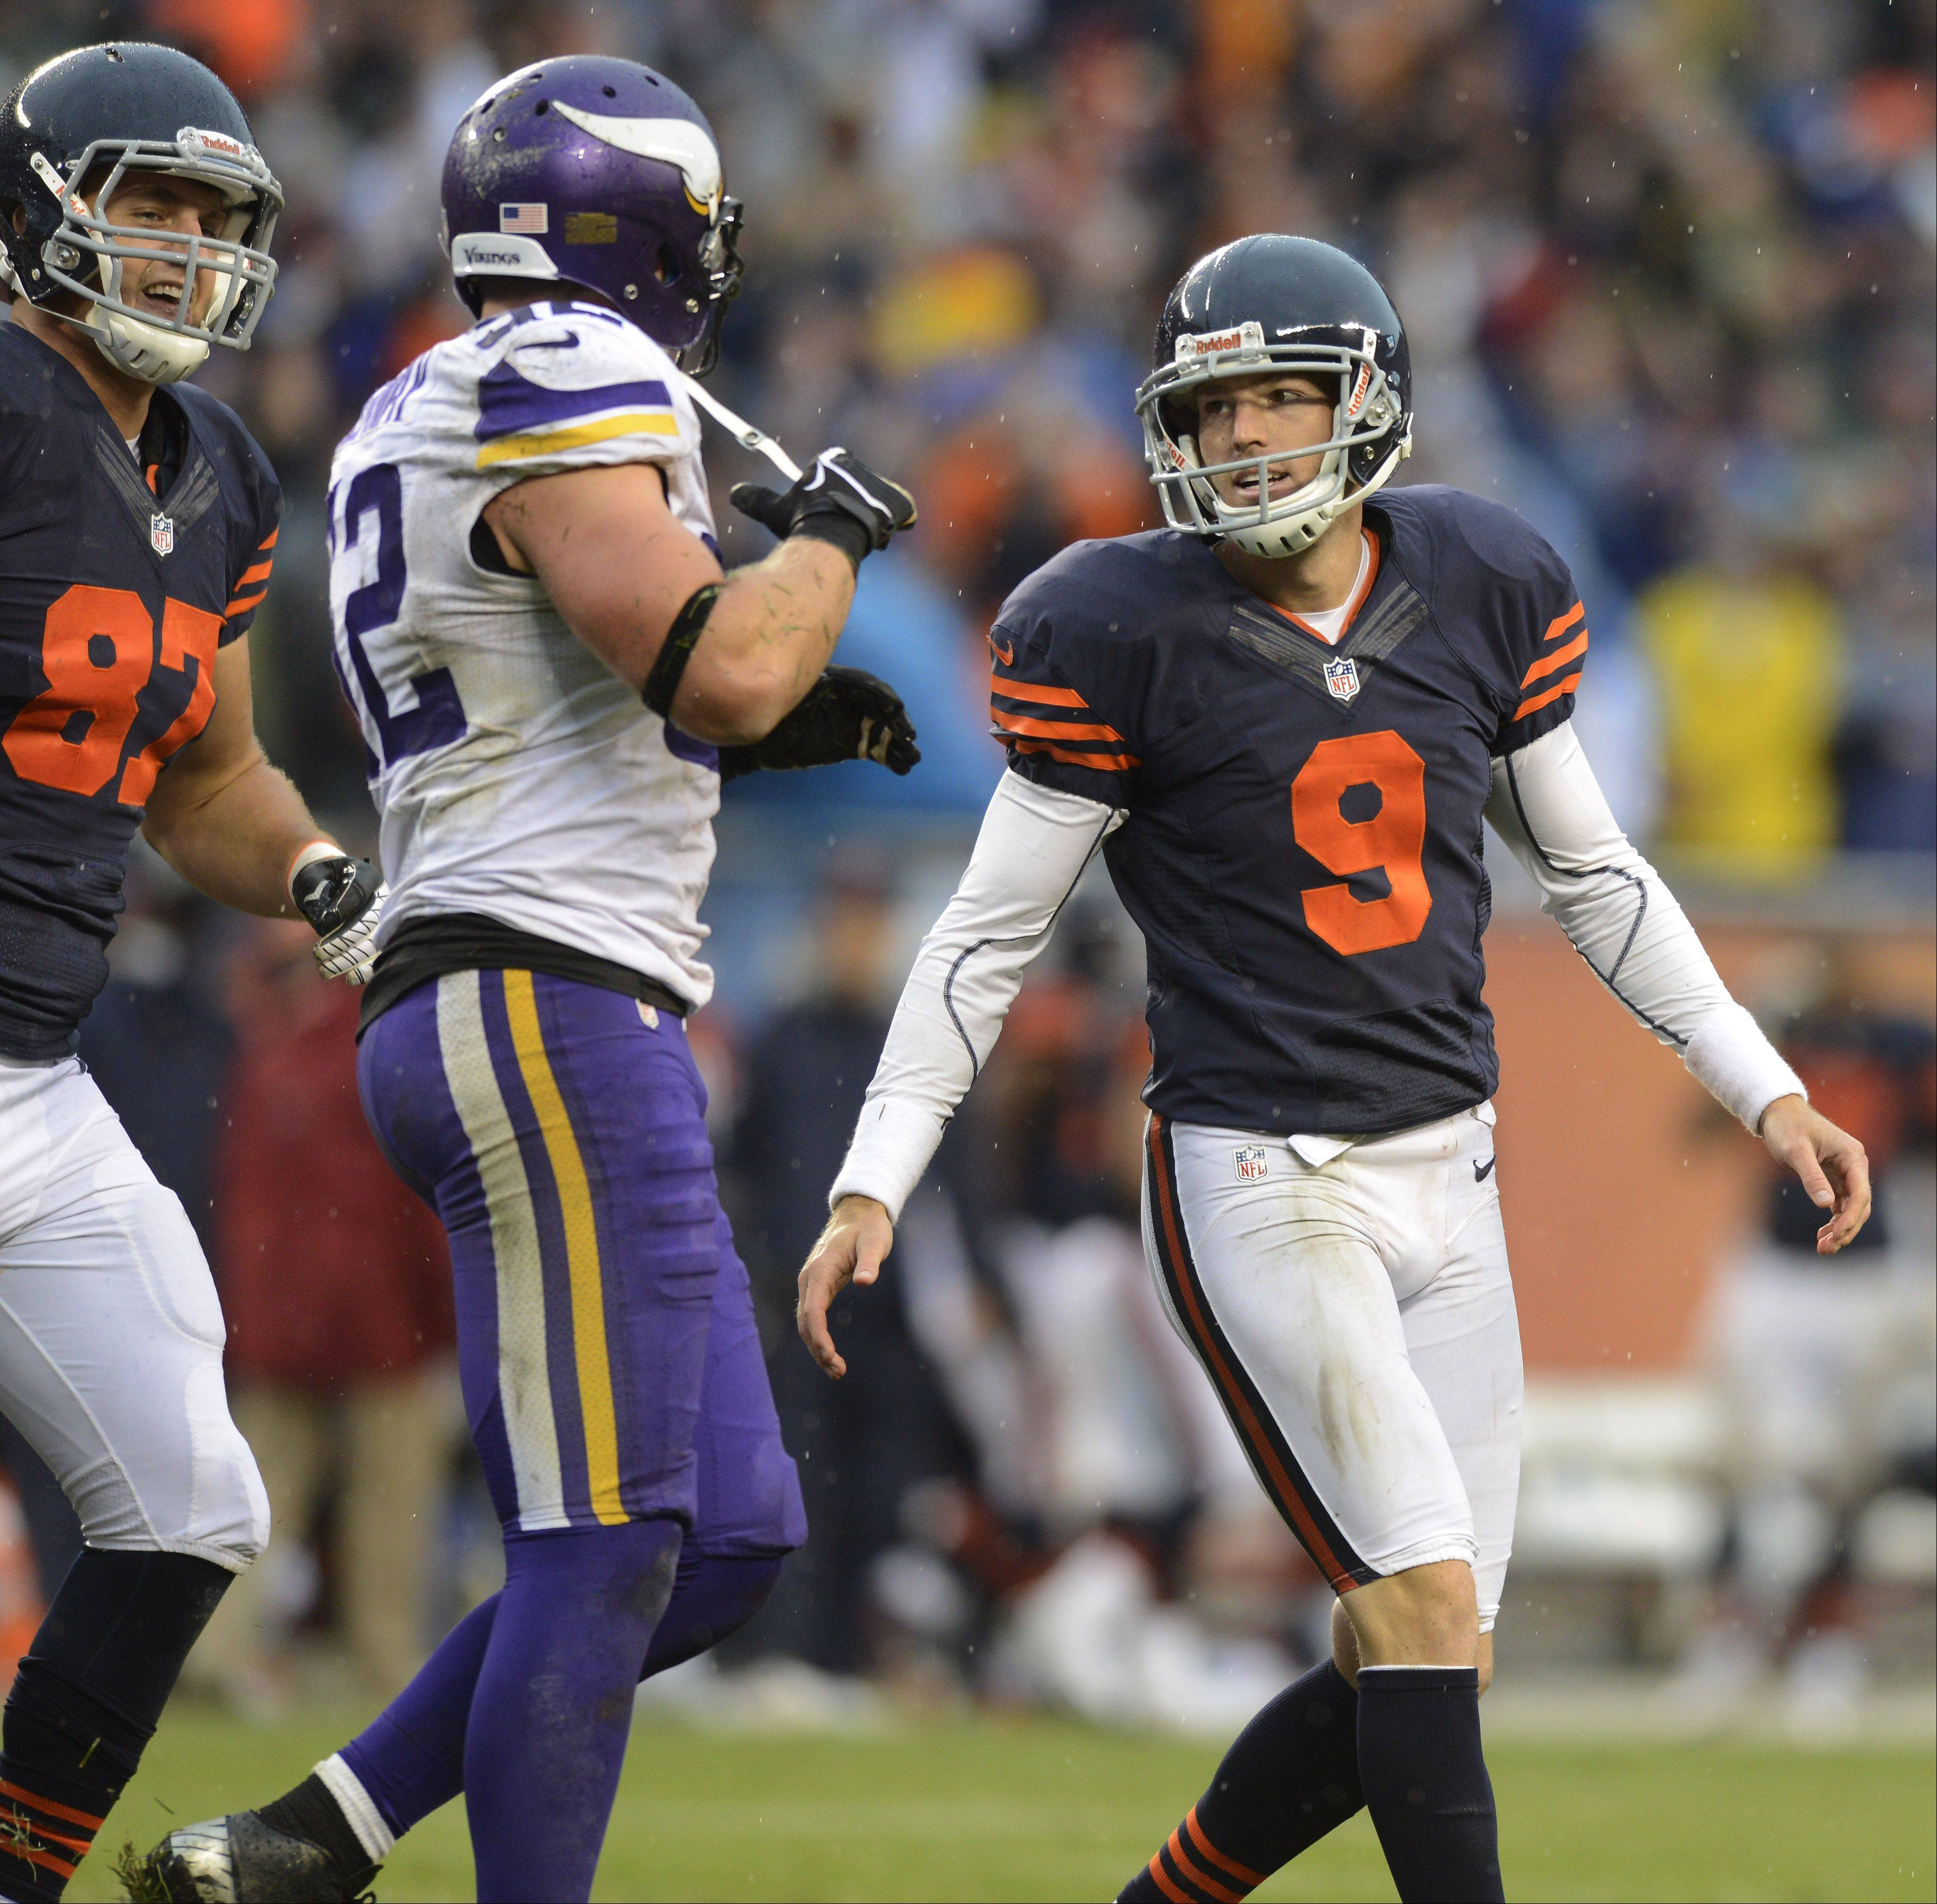 Chicago Bears kicker Robbie Gould, right, smiles with teammate Steve Maneri after kicking the extra-point that put the team ahead of the Vikings during Sunday's game at Soldier Field. The Vikings' Chad Greenway is between the two Bears players.